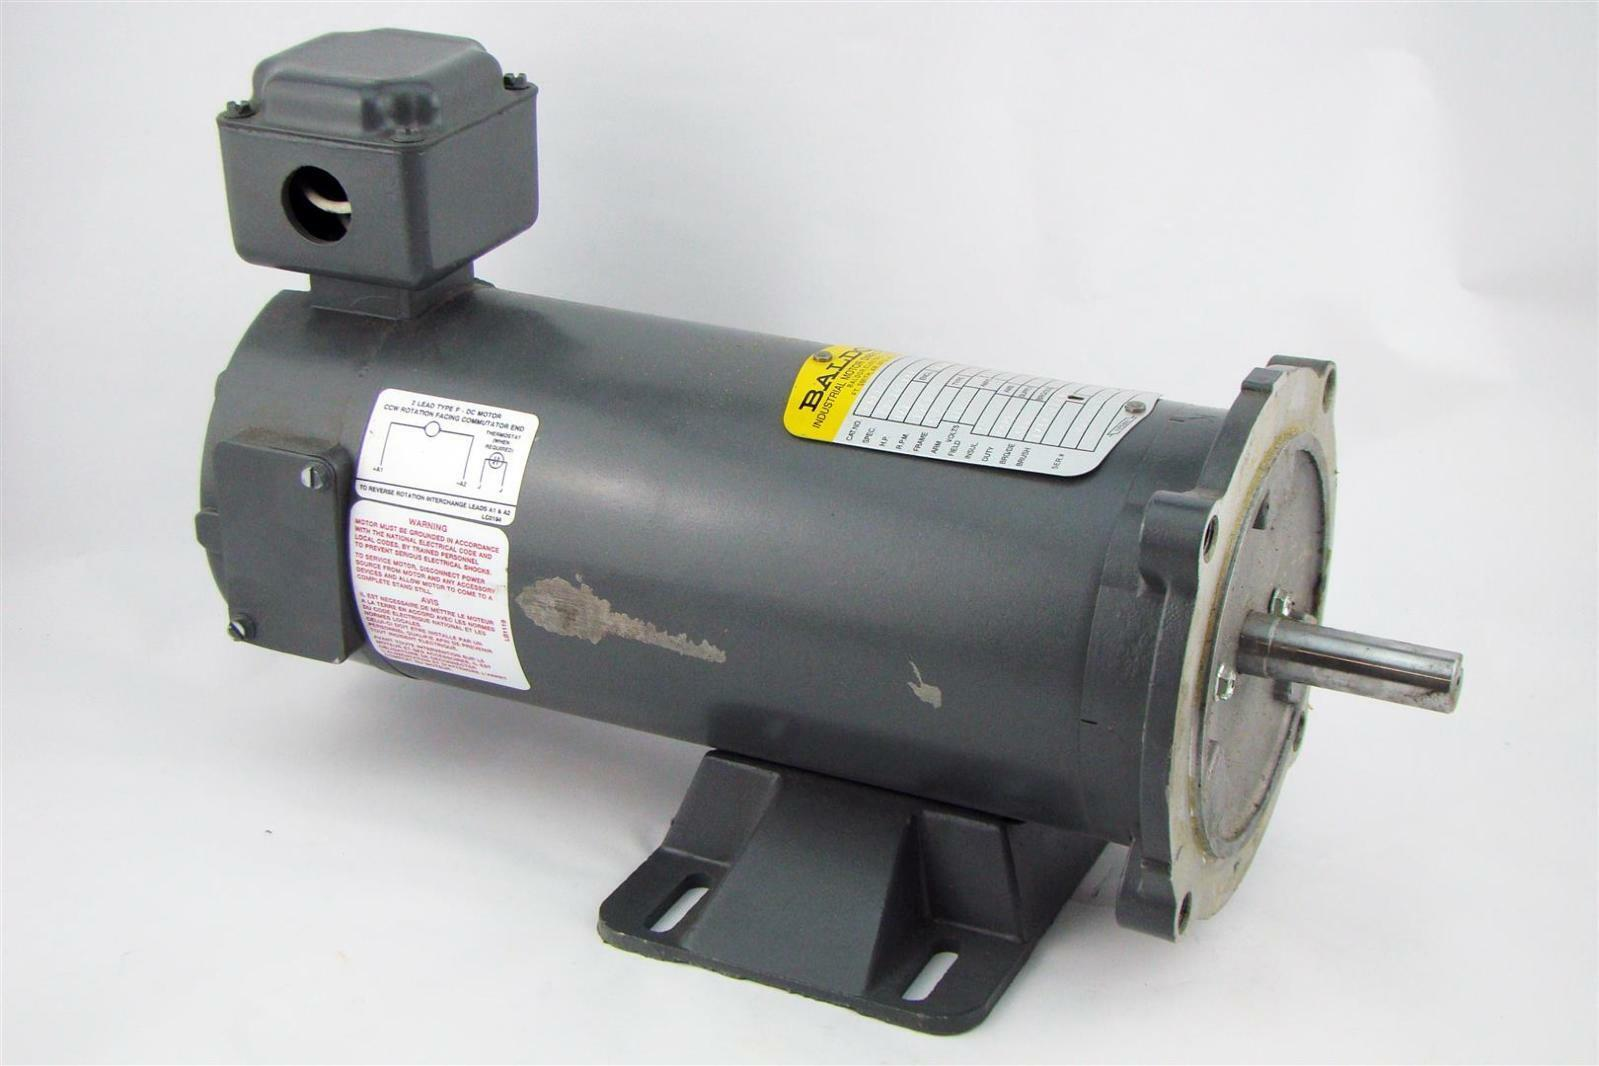 Baldor dc industrial motor 1 2hp 1750rpm 180v cdp3326 for Baldor electric motor parts